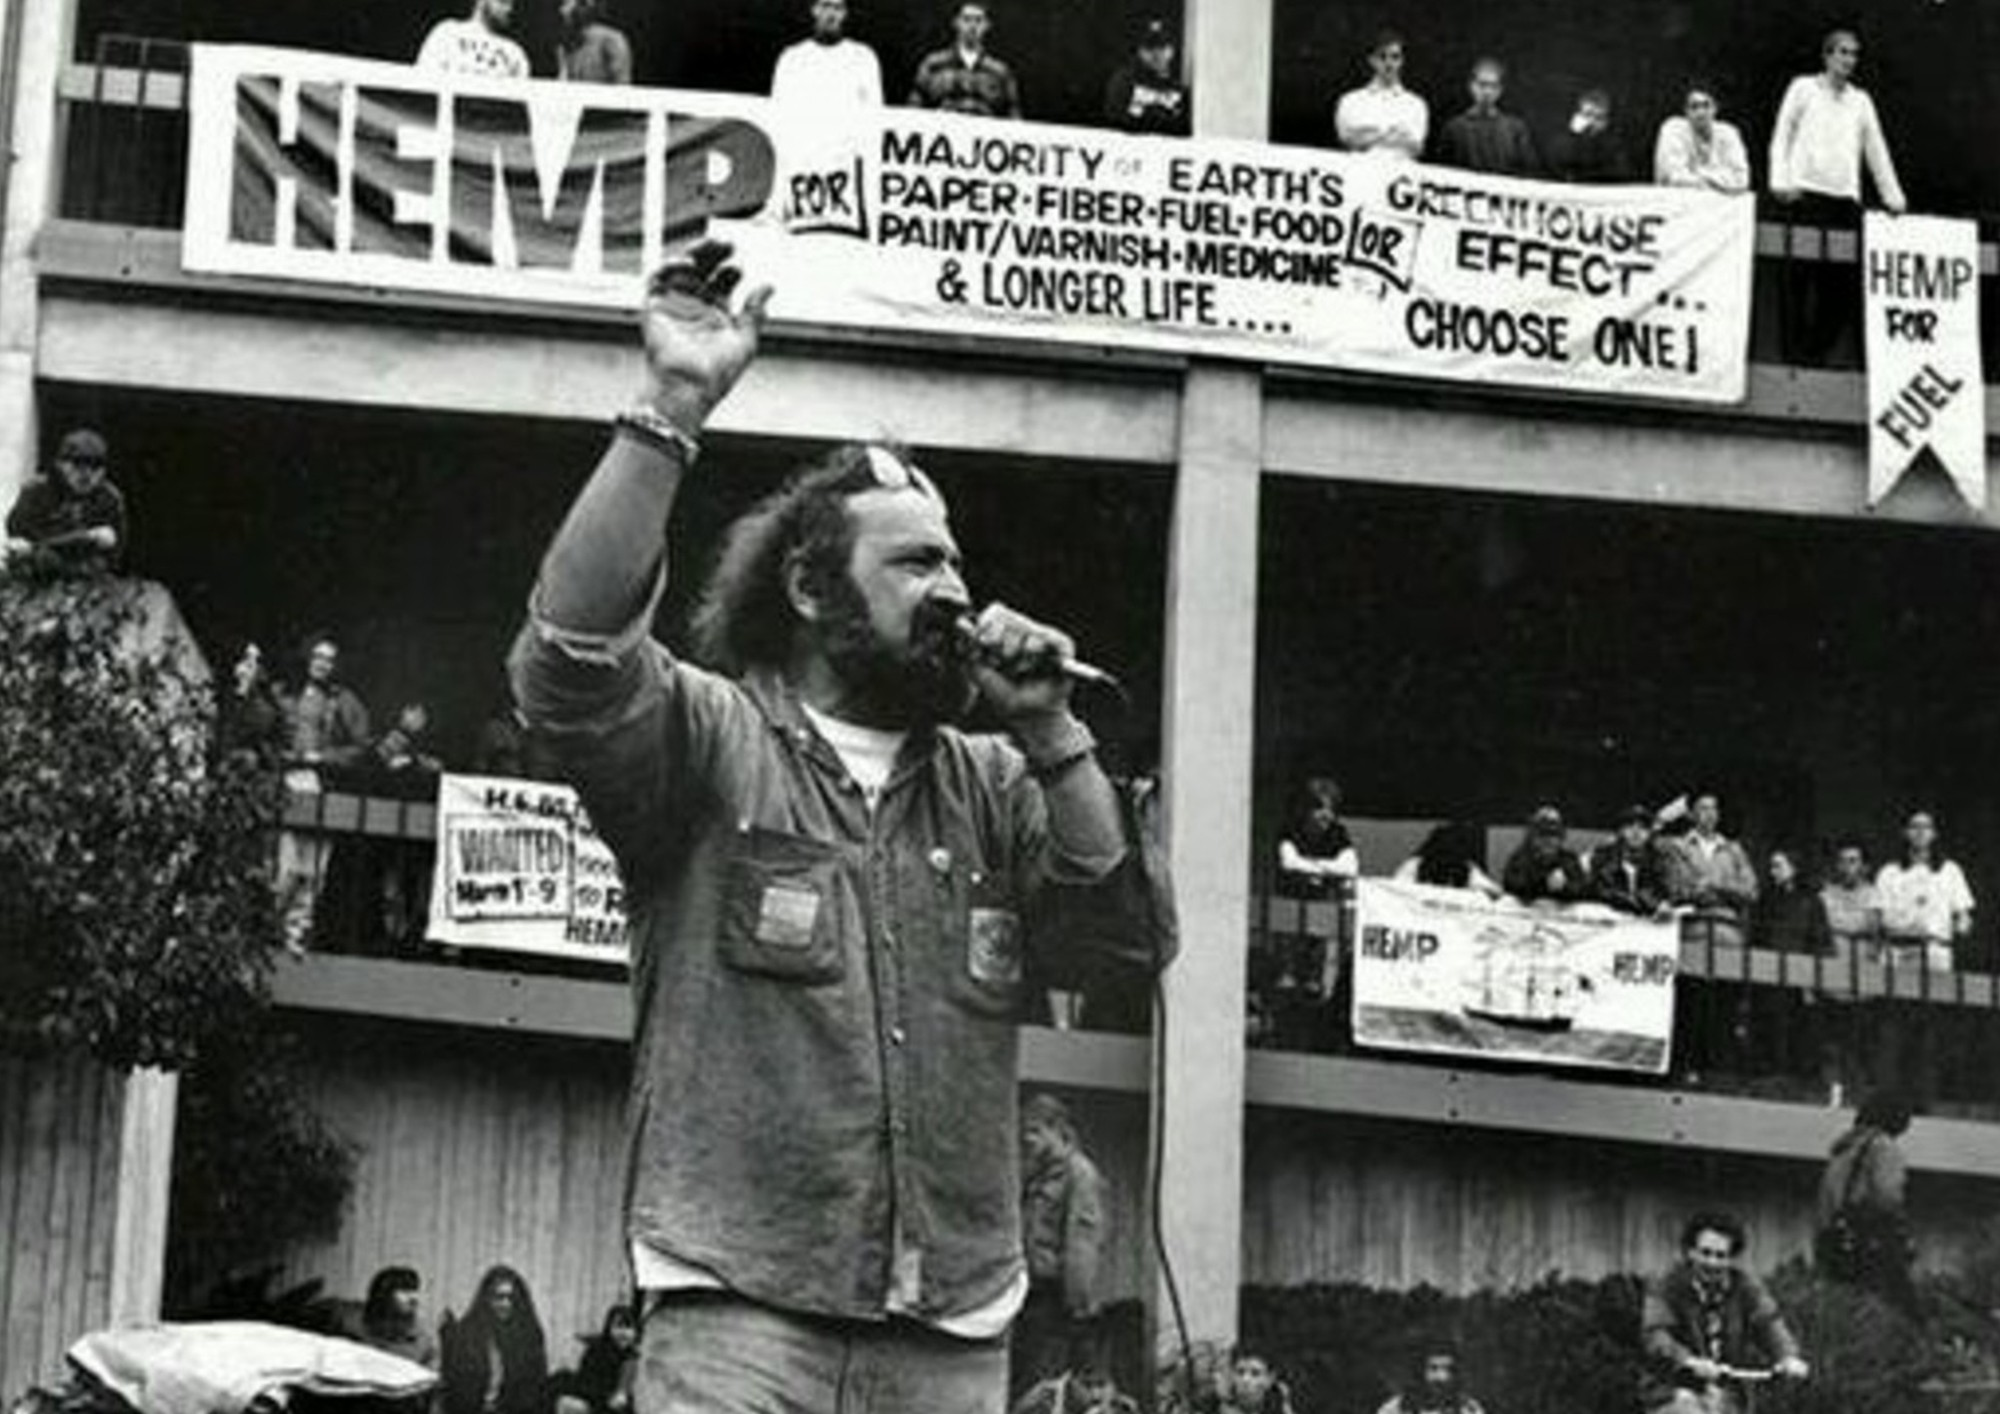 Jack Herer: legalization of hemp in the USA